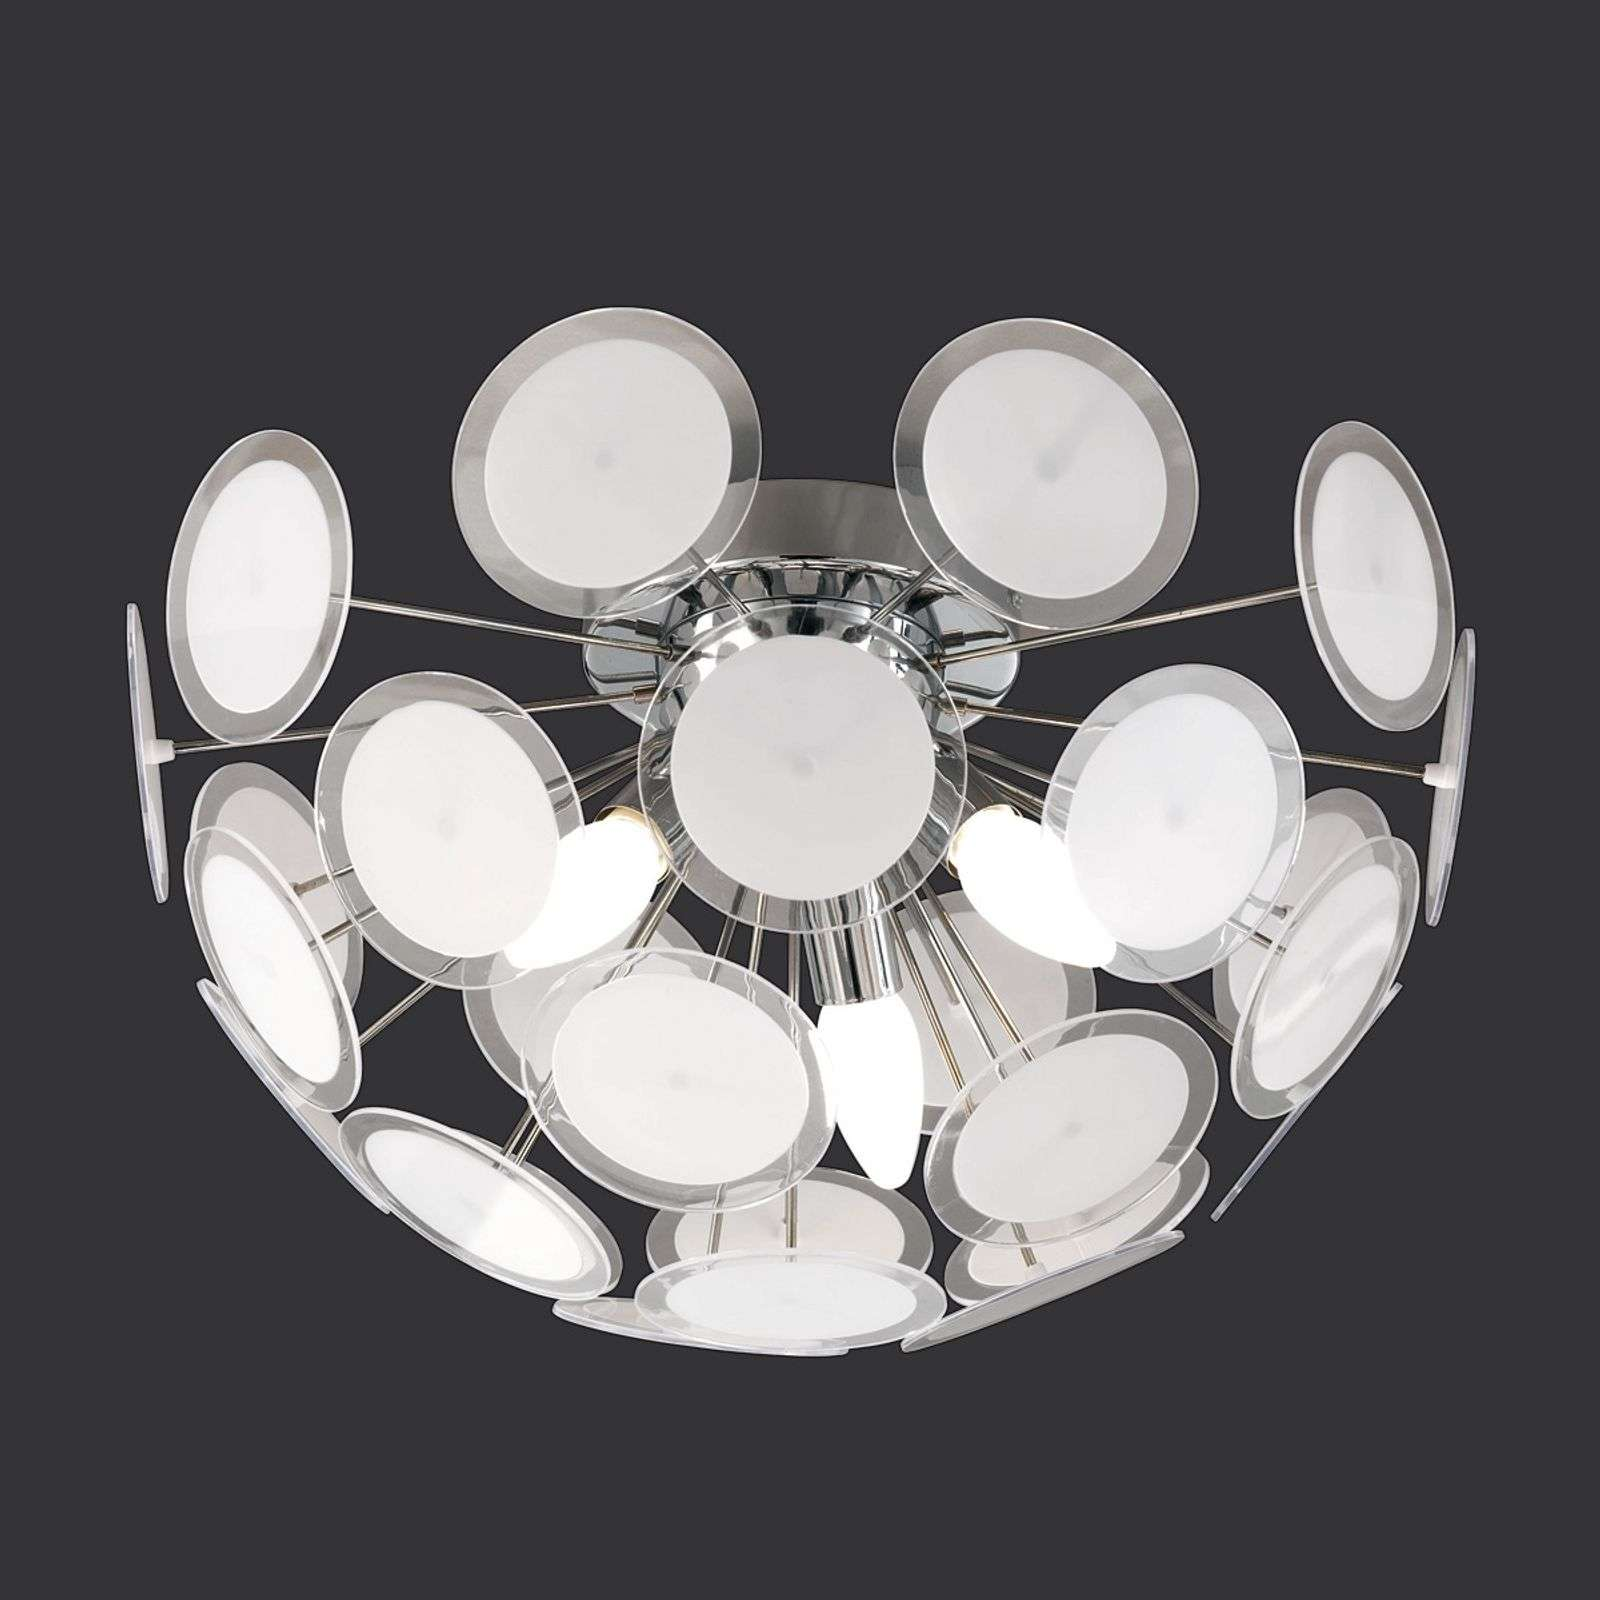 Originele plafondlamp Circle, wit-chroom